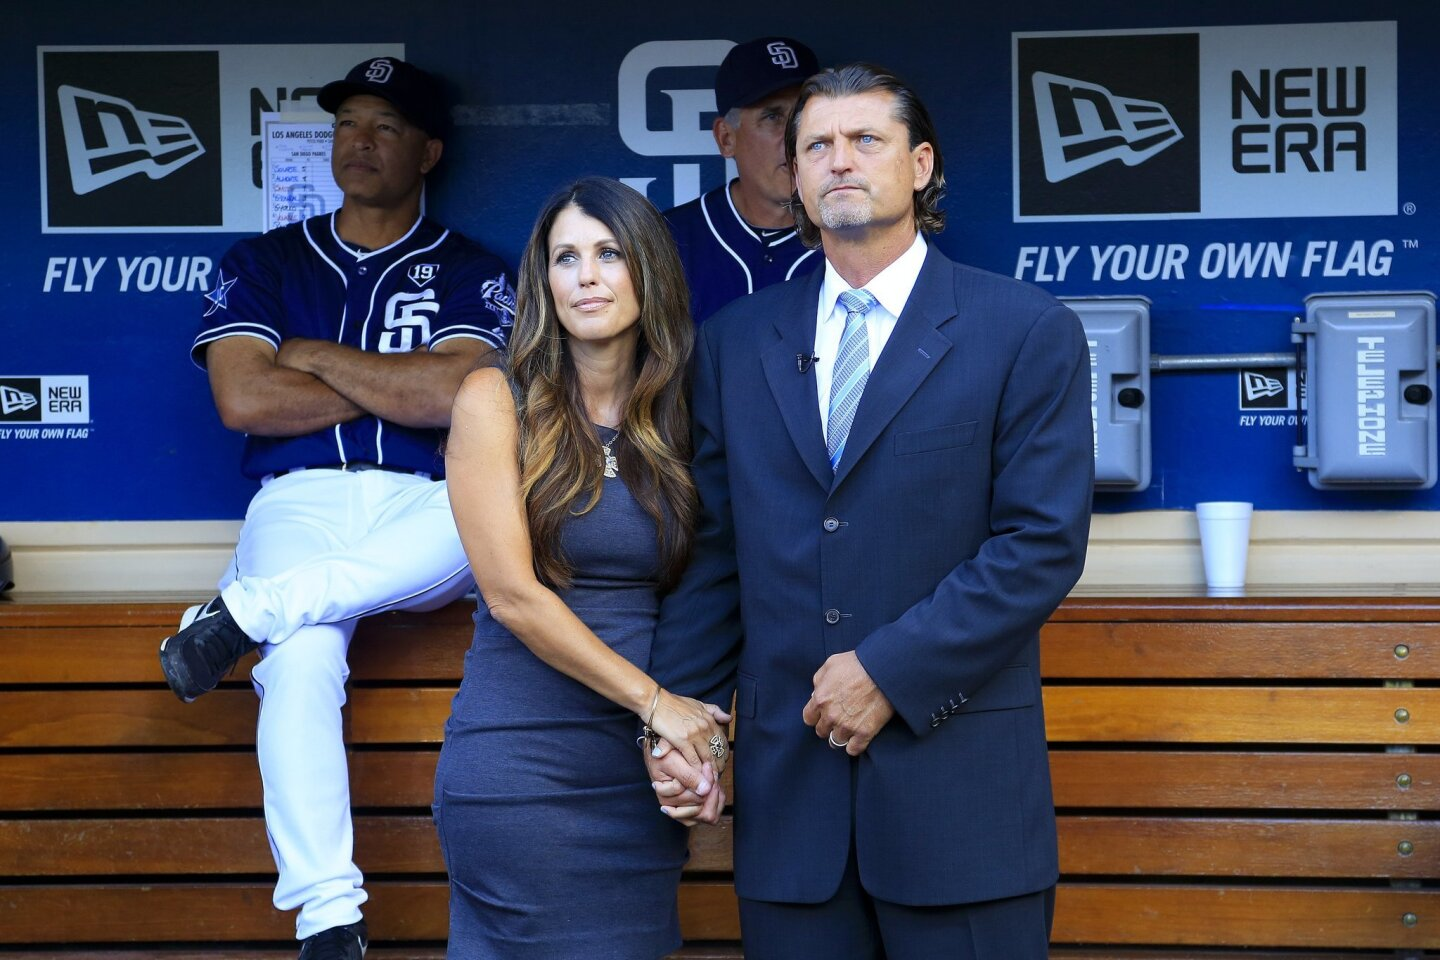 On Saturday evening at Petco Park in San Diego, former Padres pitcher Trevor Hoffman standing in the Padres dugout with his wife Tracy was honored when he was inducted into the Padres Hall of Fame.